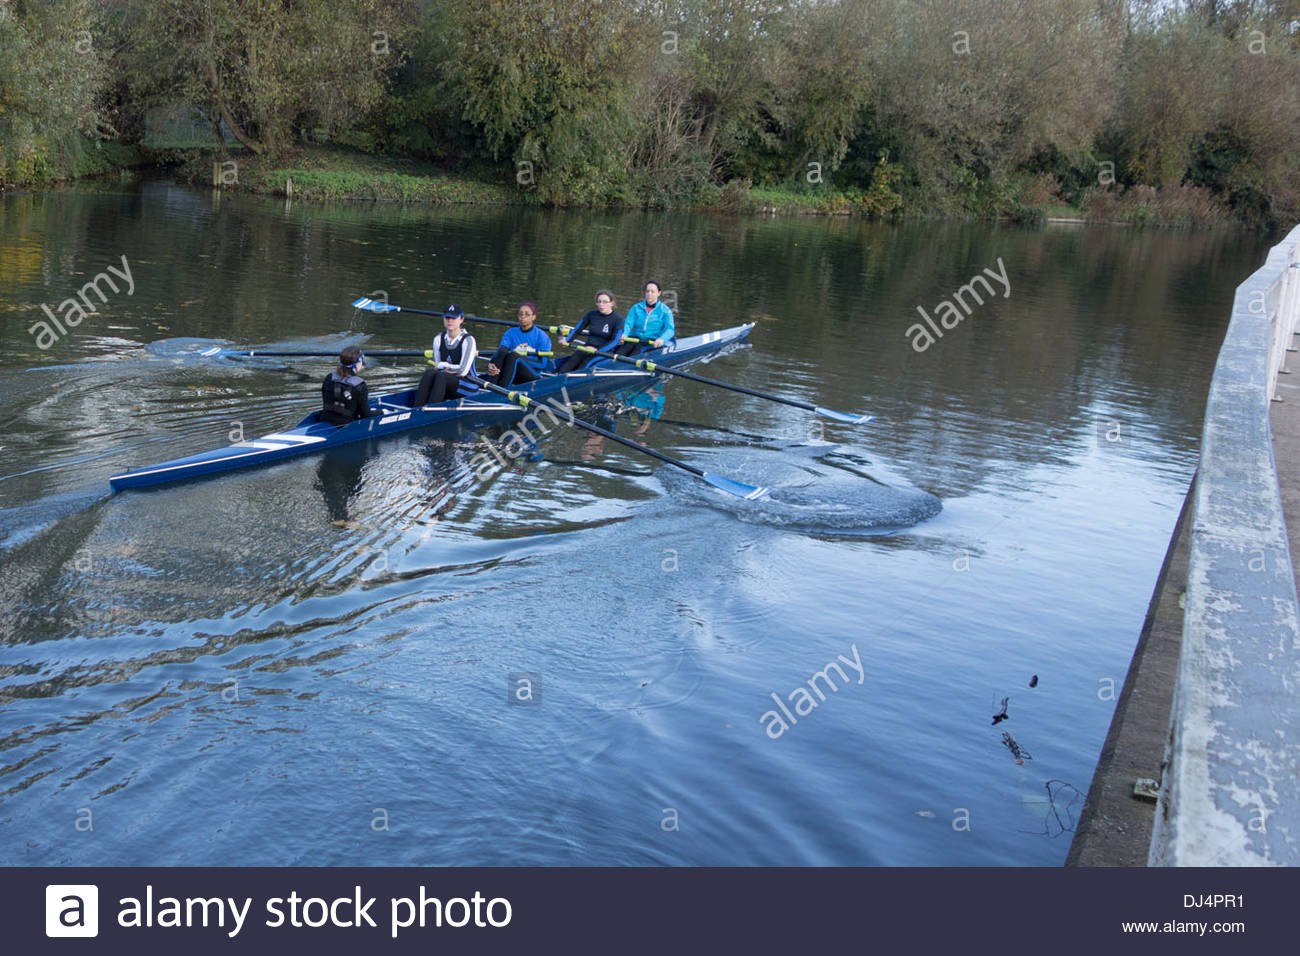 All female rowing crew in a coxed four on the River Cam in Cambridge - Stock Image